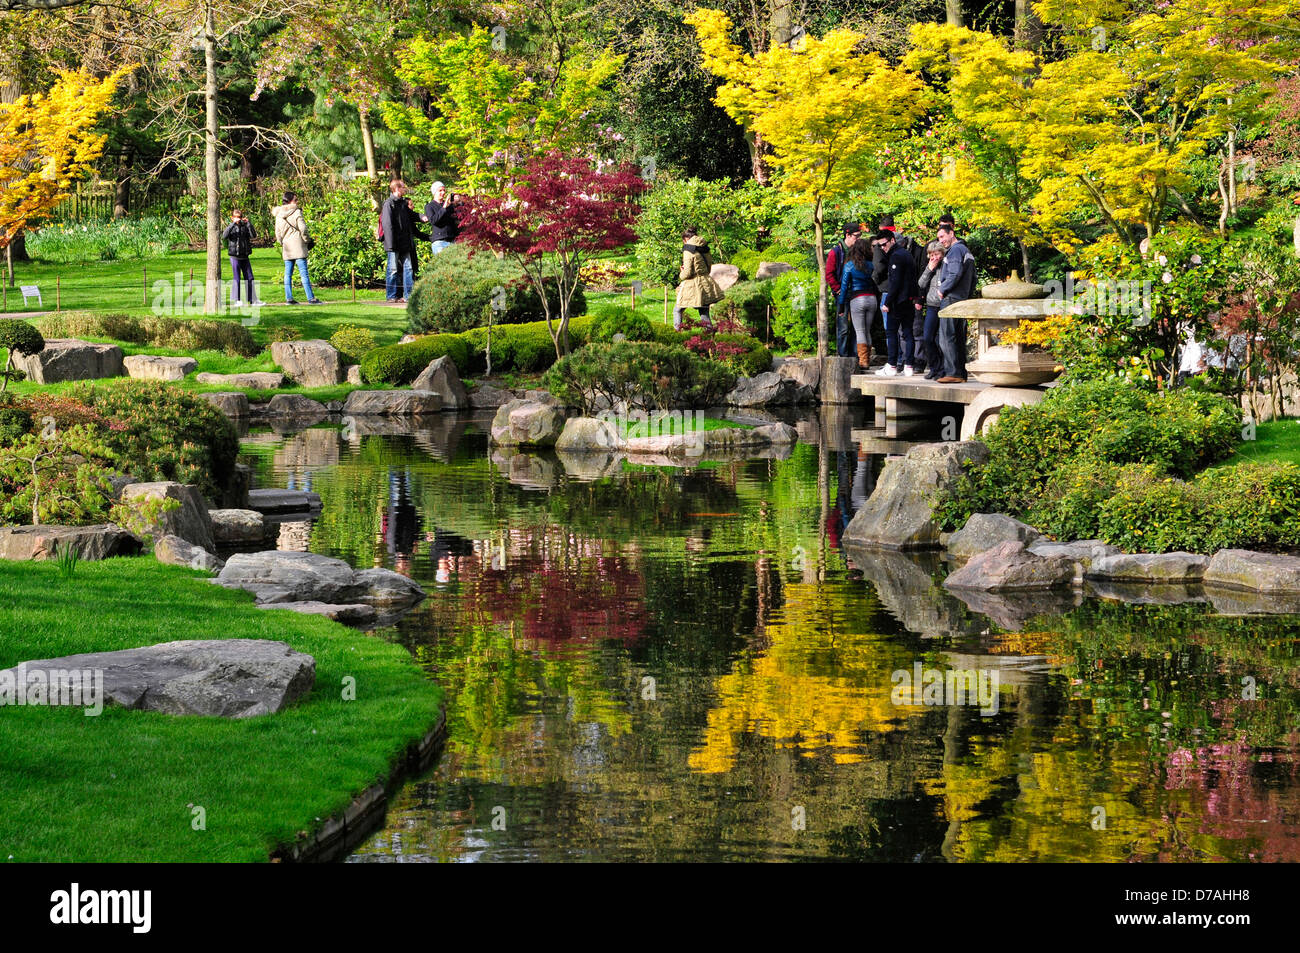 A View Of The Pond In Japanese Garden Holland Park London UK